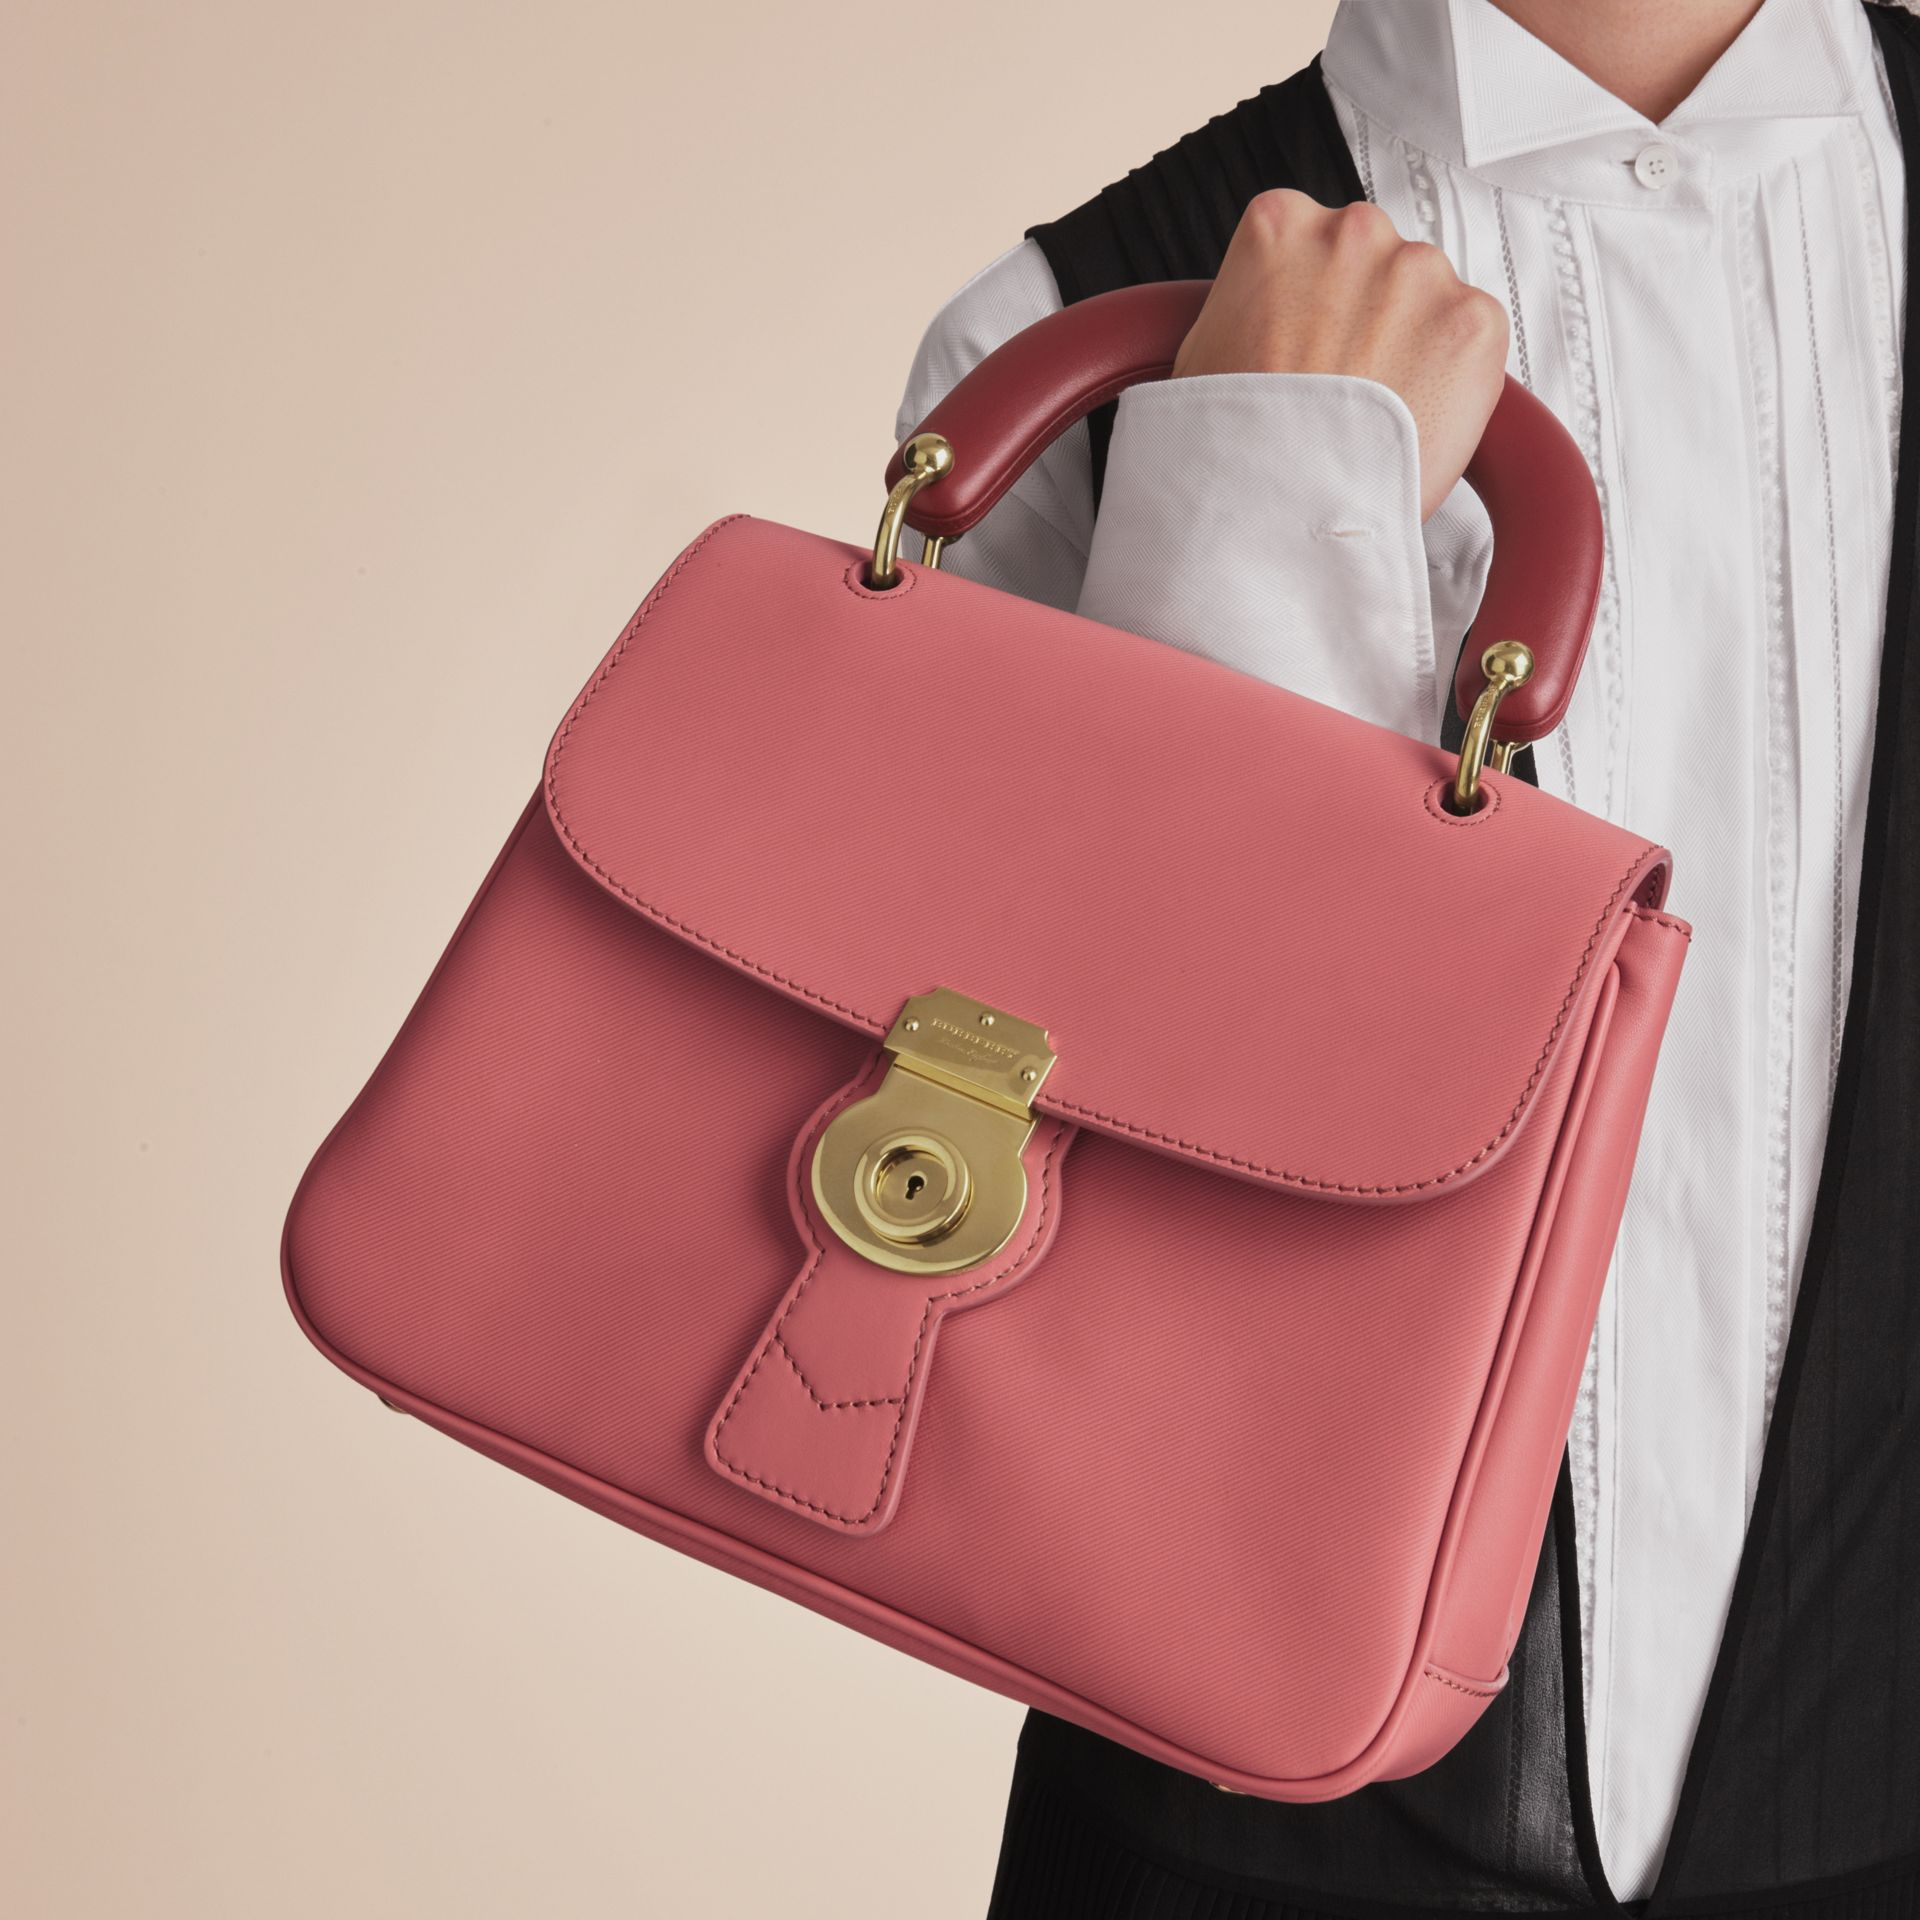 The Medium DK88 Top Handle Bag in Blossom Pink - Women | Burberry - gallery image 6